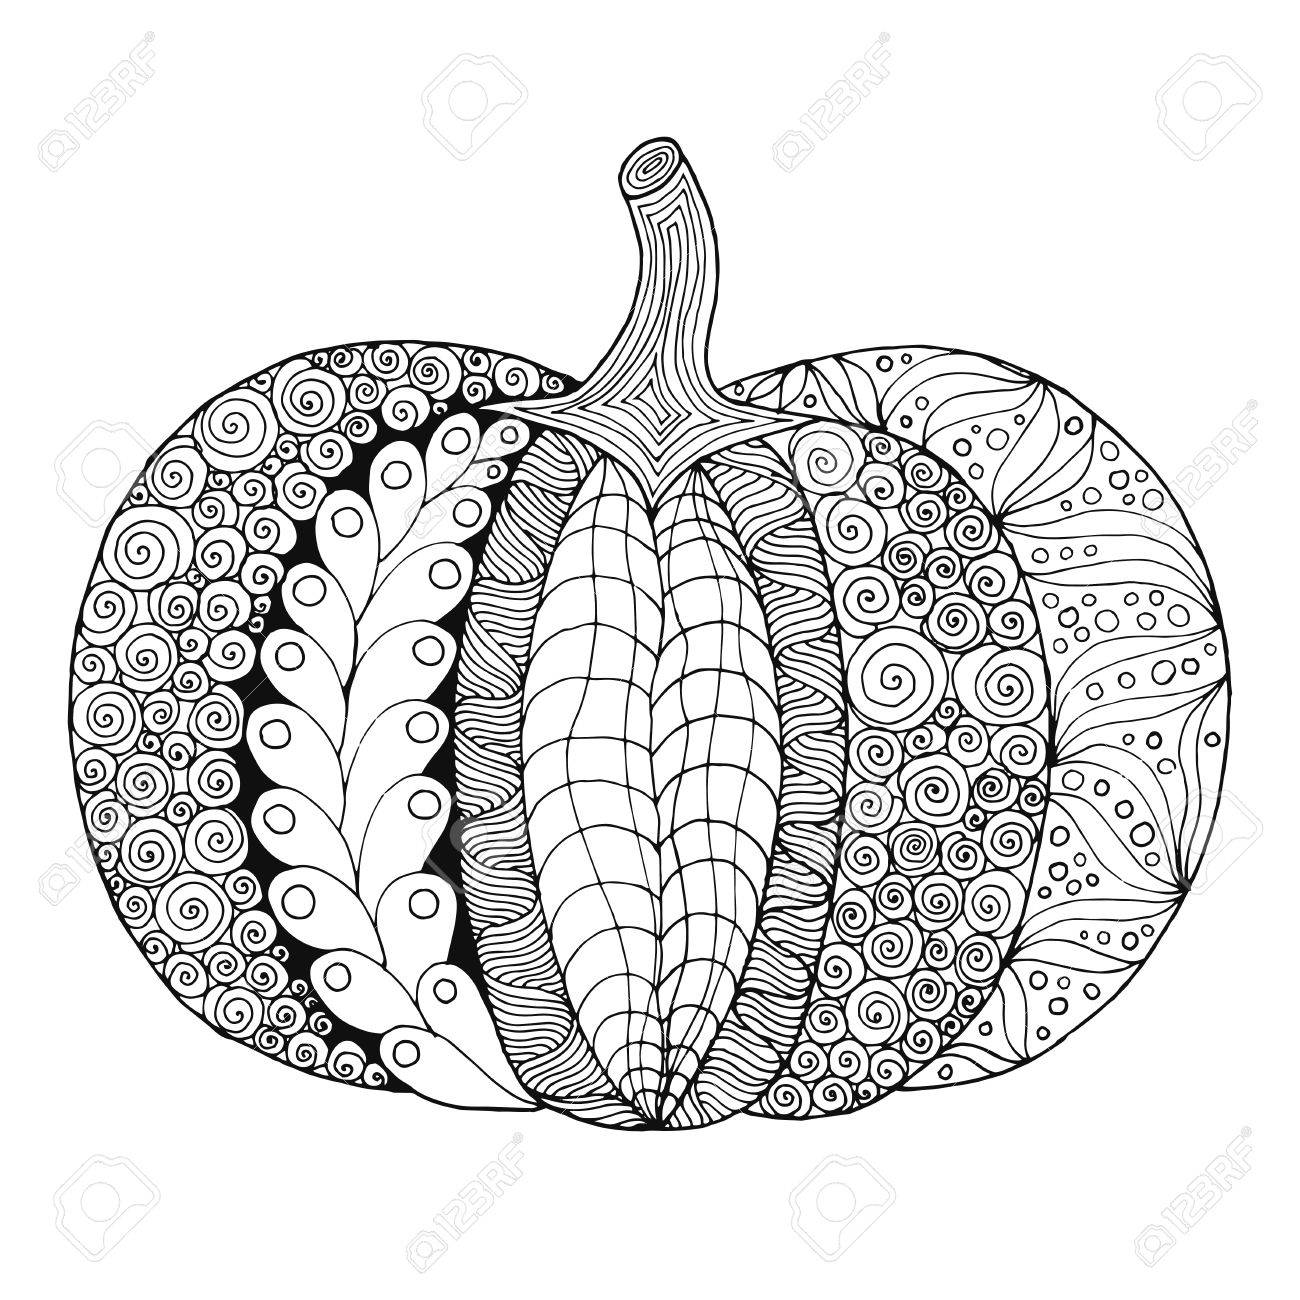 Zentangle Stylized Pumpkin Black White Hand Drawn Vector Illustration Royalty Free Cliparts Vectors And Stock Illustration Image 64961560